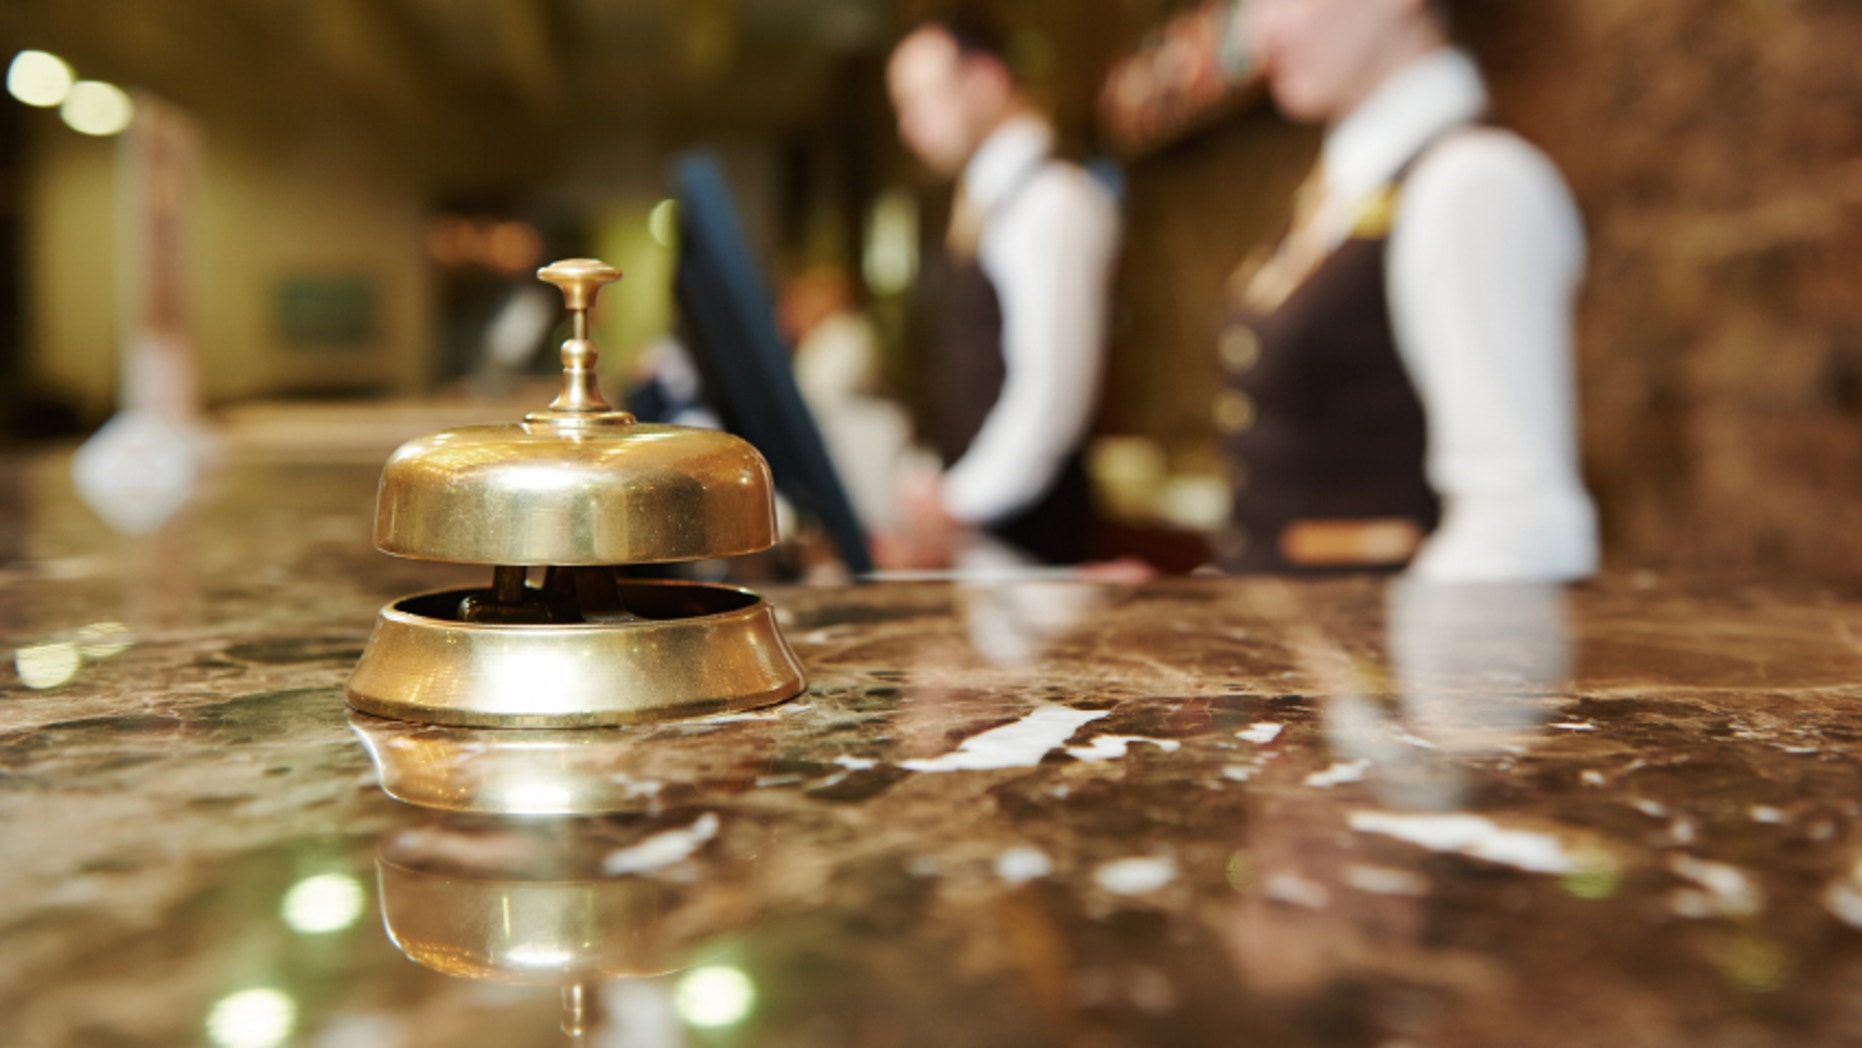 Is it okay to tip front desk staff?